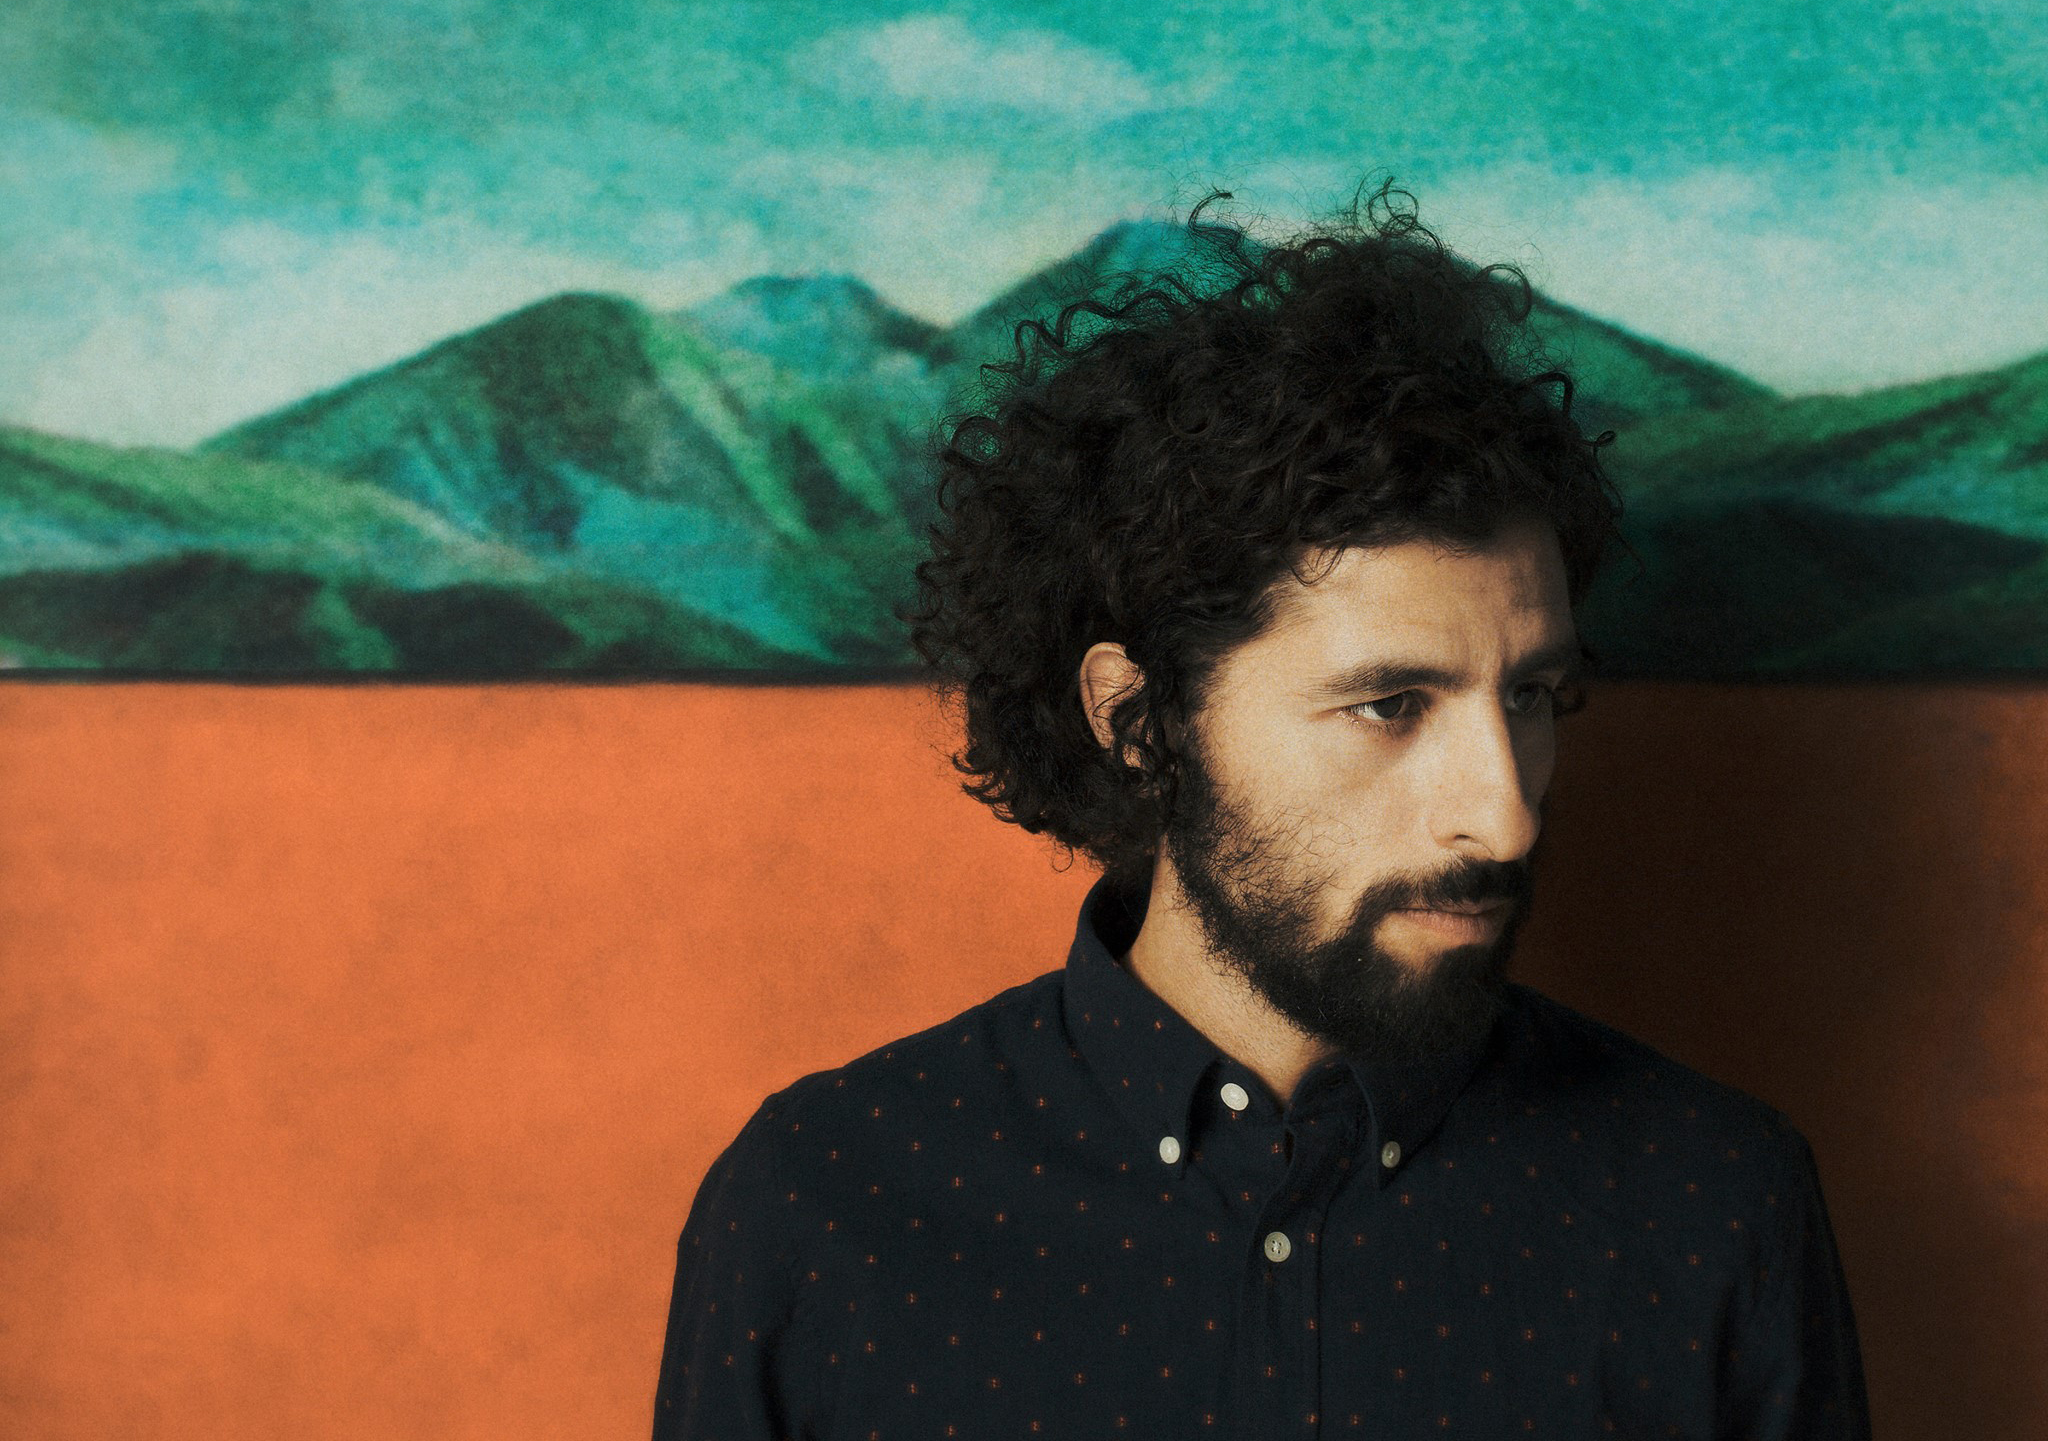 Some nice folksy vibes for fans of Jose Gonzalez